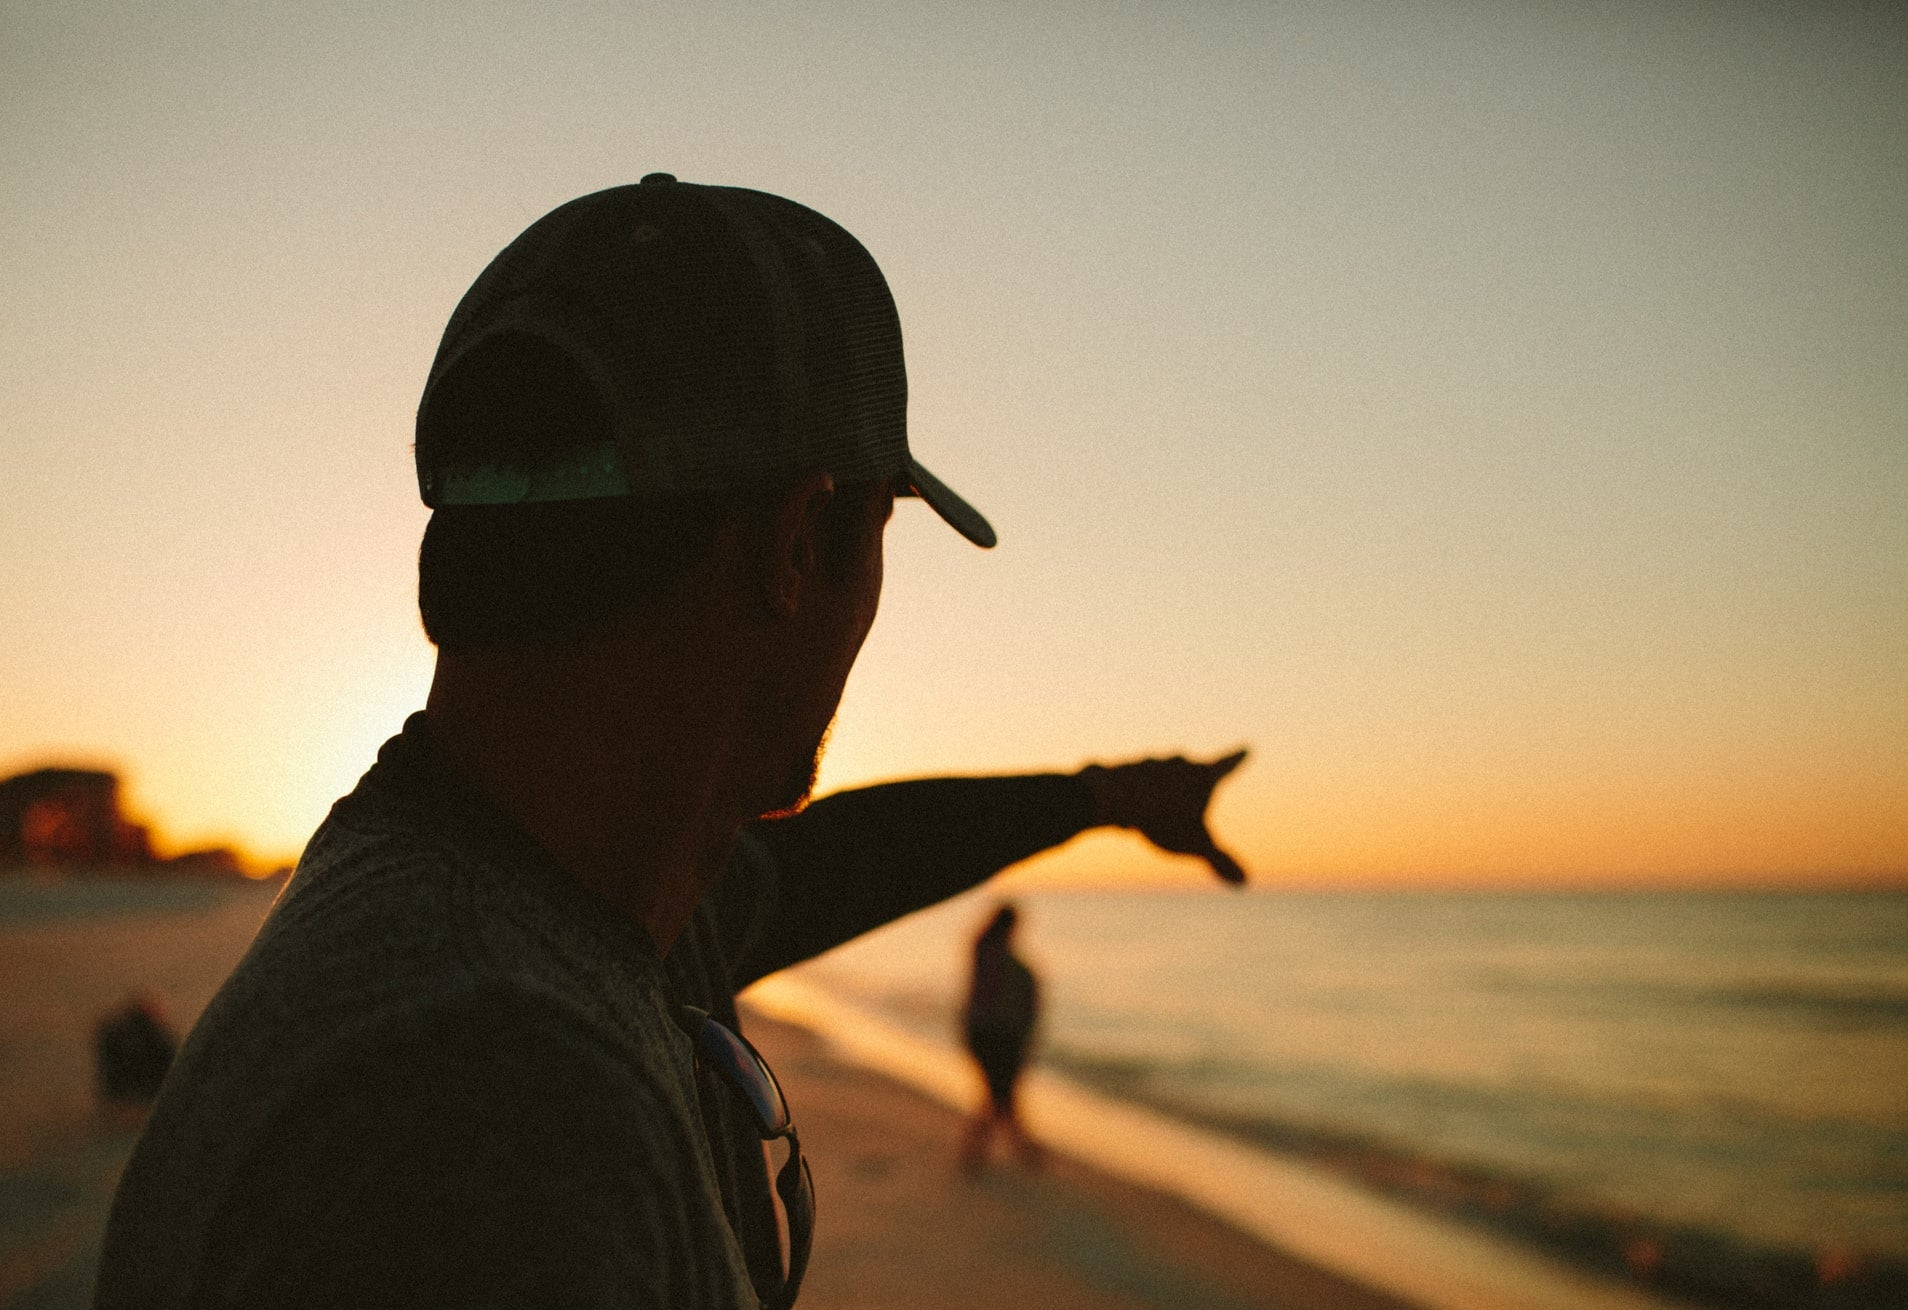 Harry pointing on Beach at Sunset